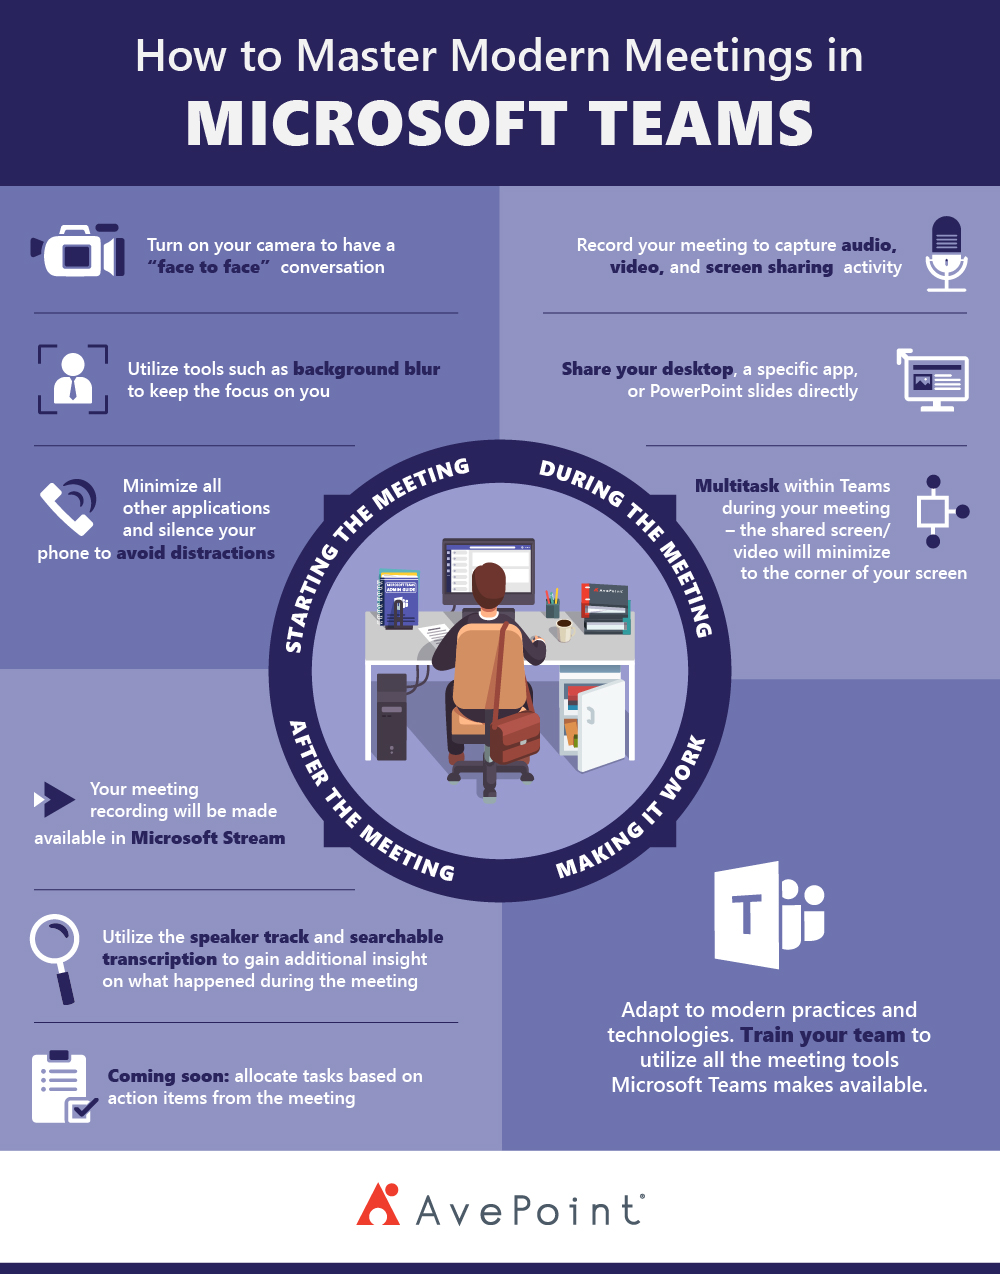 microsoft teams - photo #22